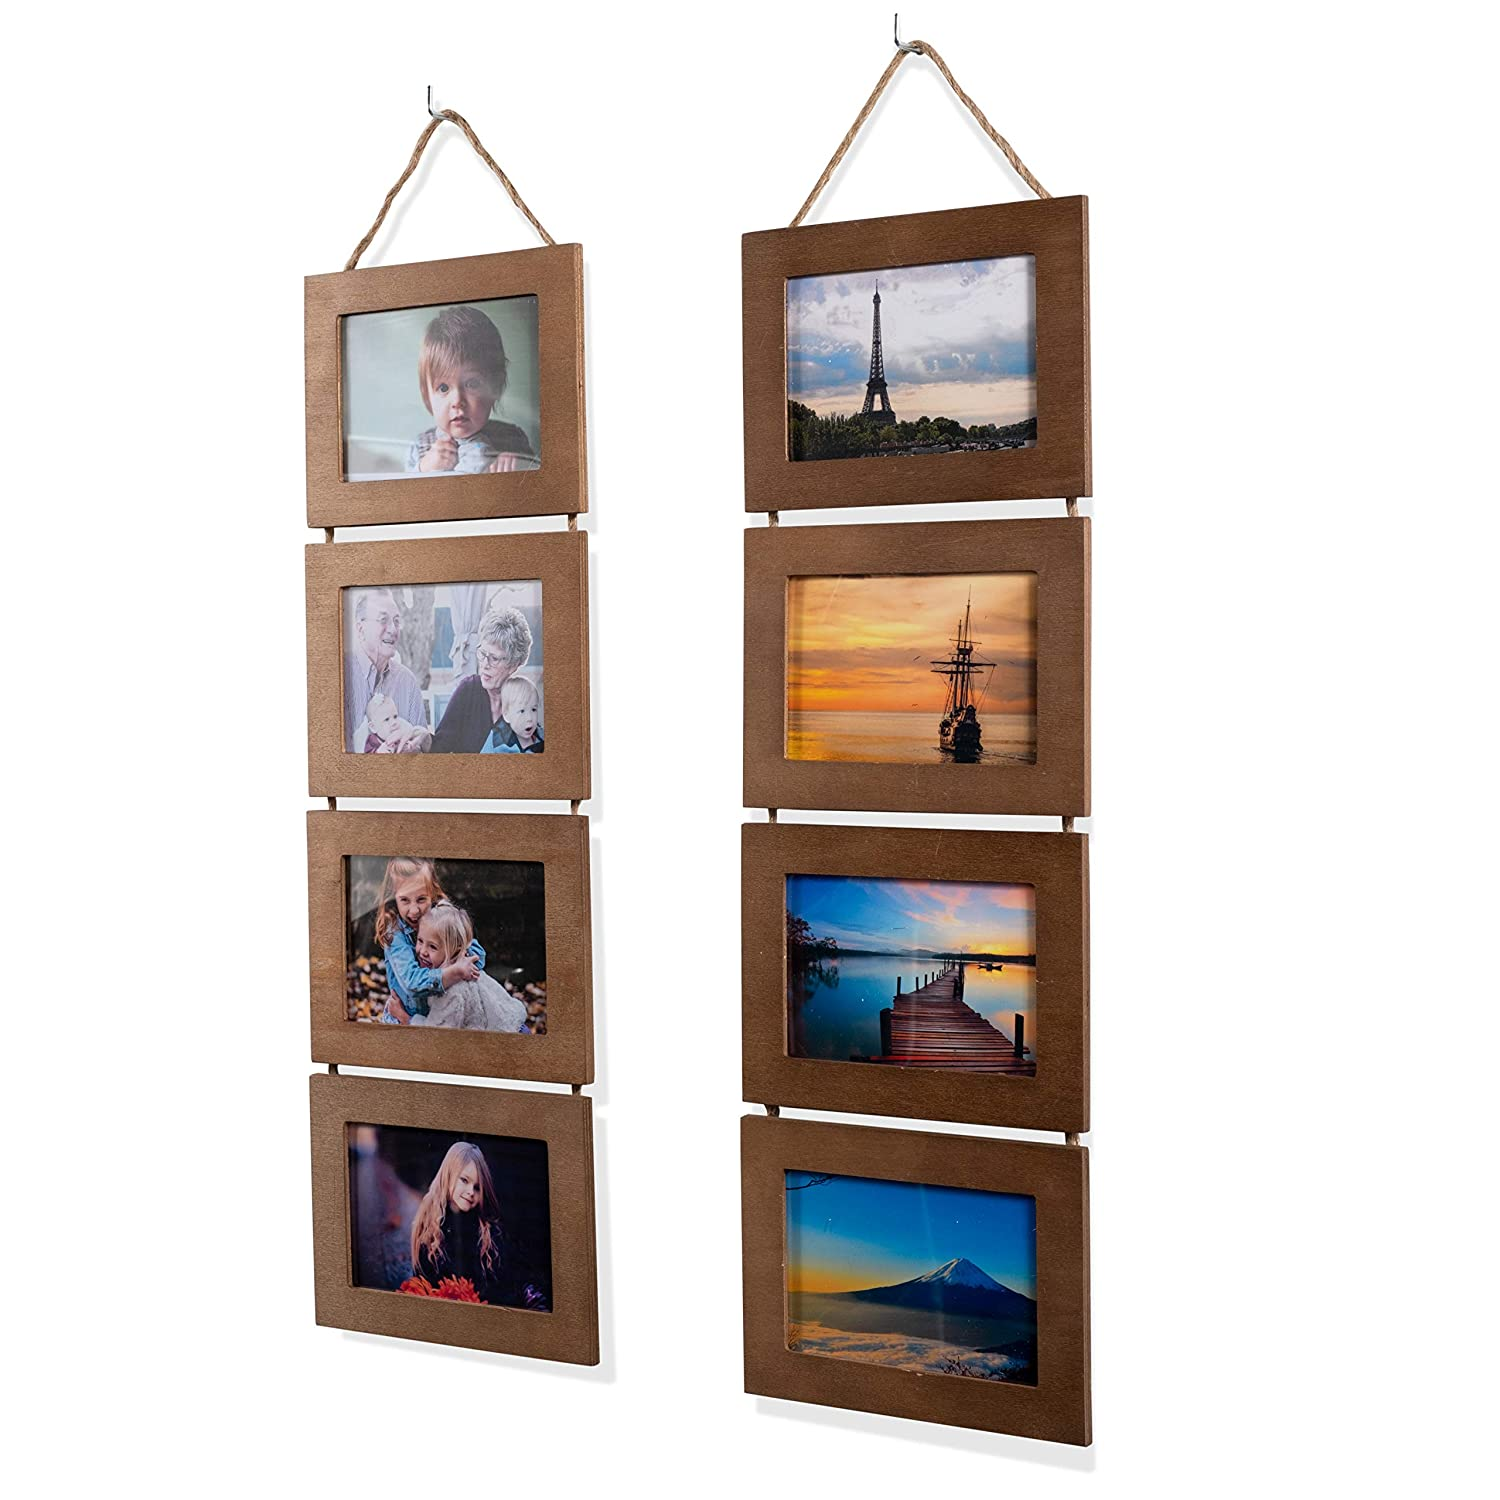 Wallniture Wood Photo Collage Picture Frame Walnut Finish Total 8 Opening for 4x6 Inch Photos Wall Mountable Ready to Hang Vertical Gallery Décor